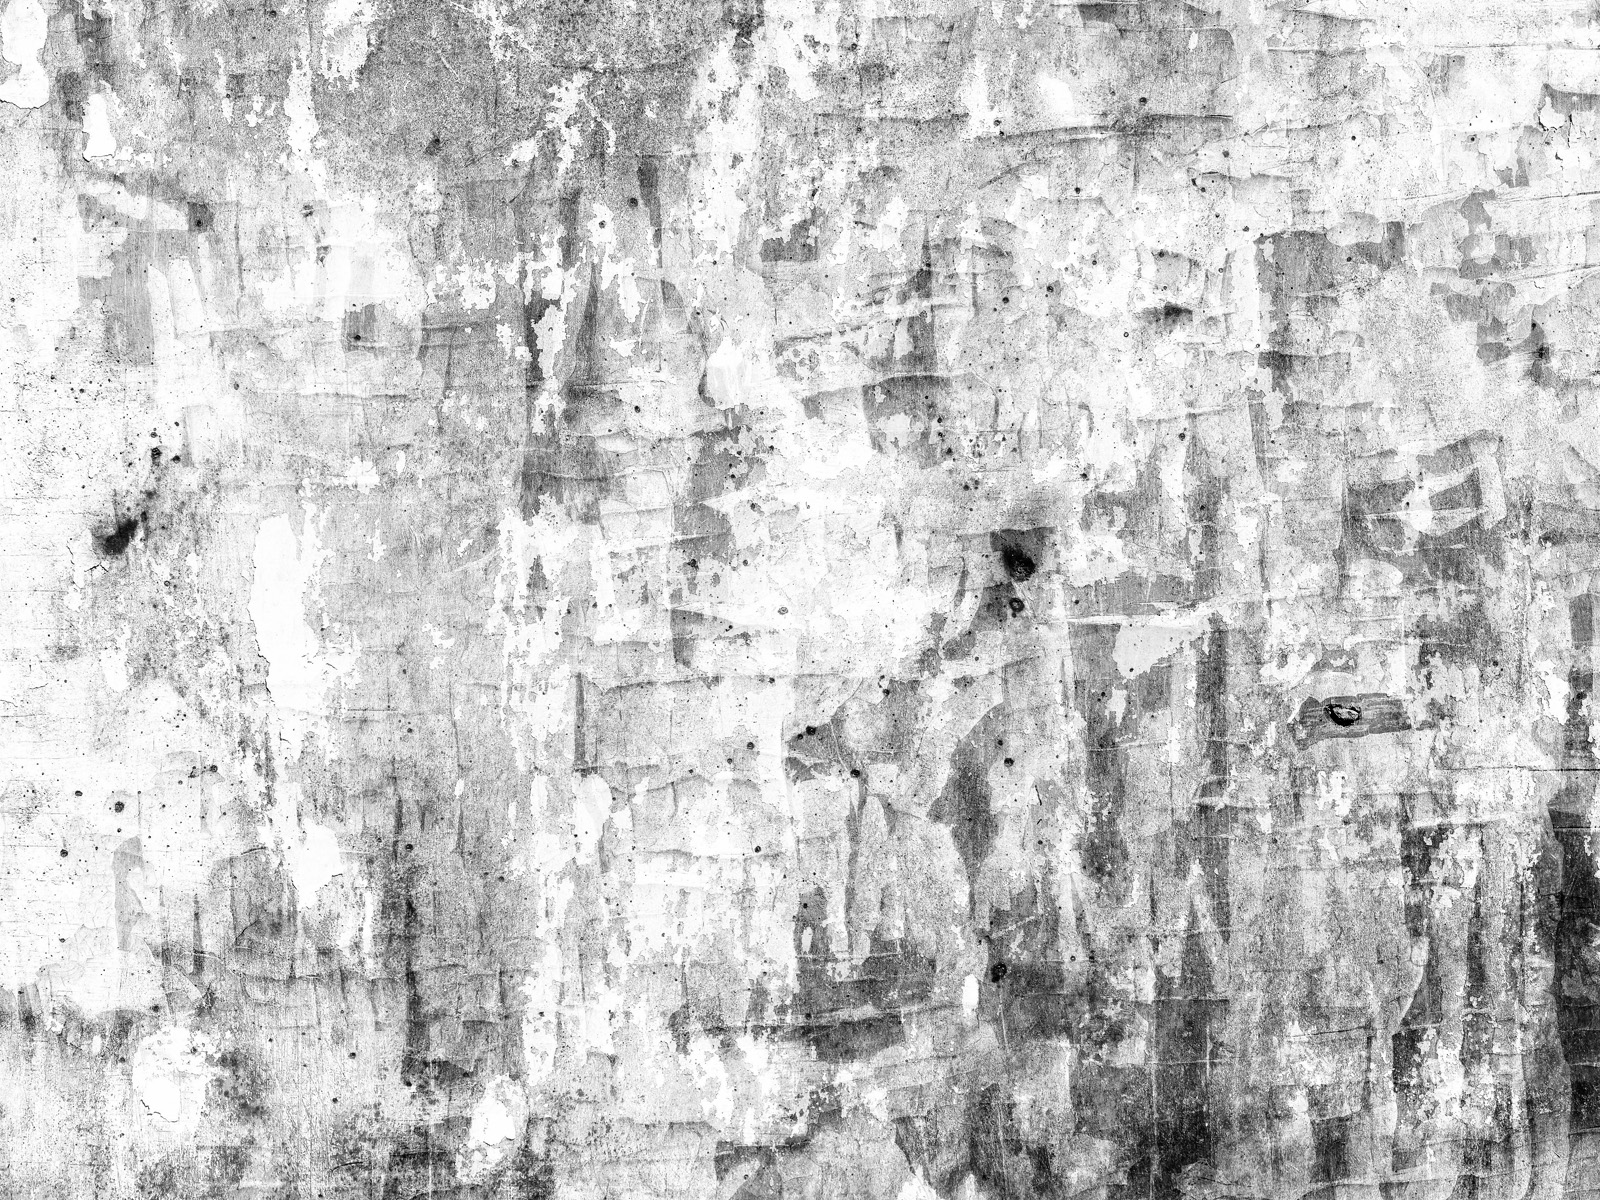 Grunge Vintage Backgrounds Abstract Black White